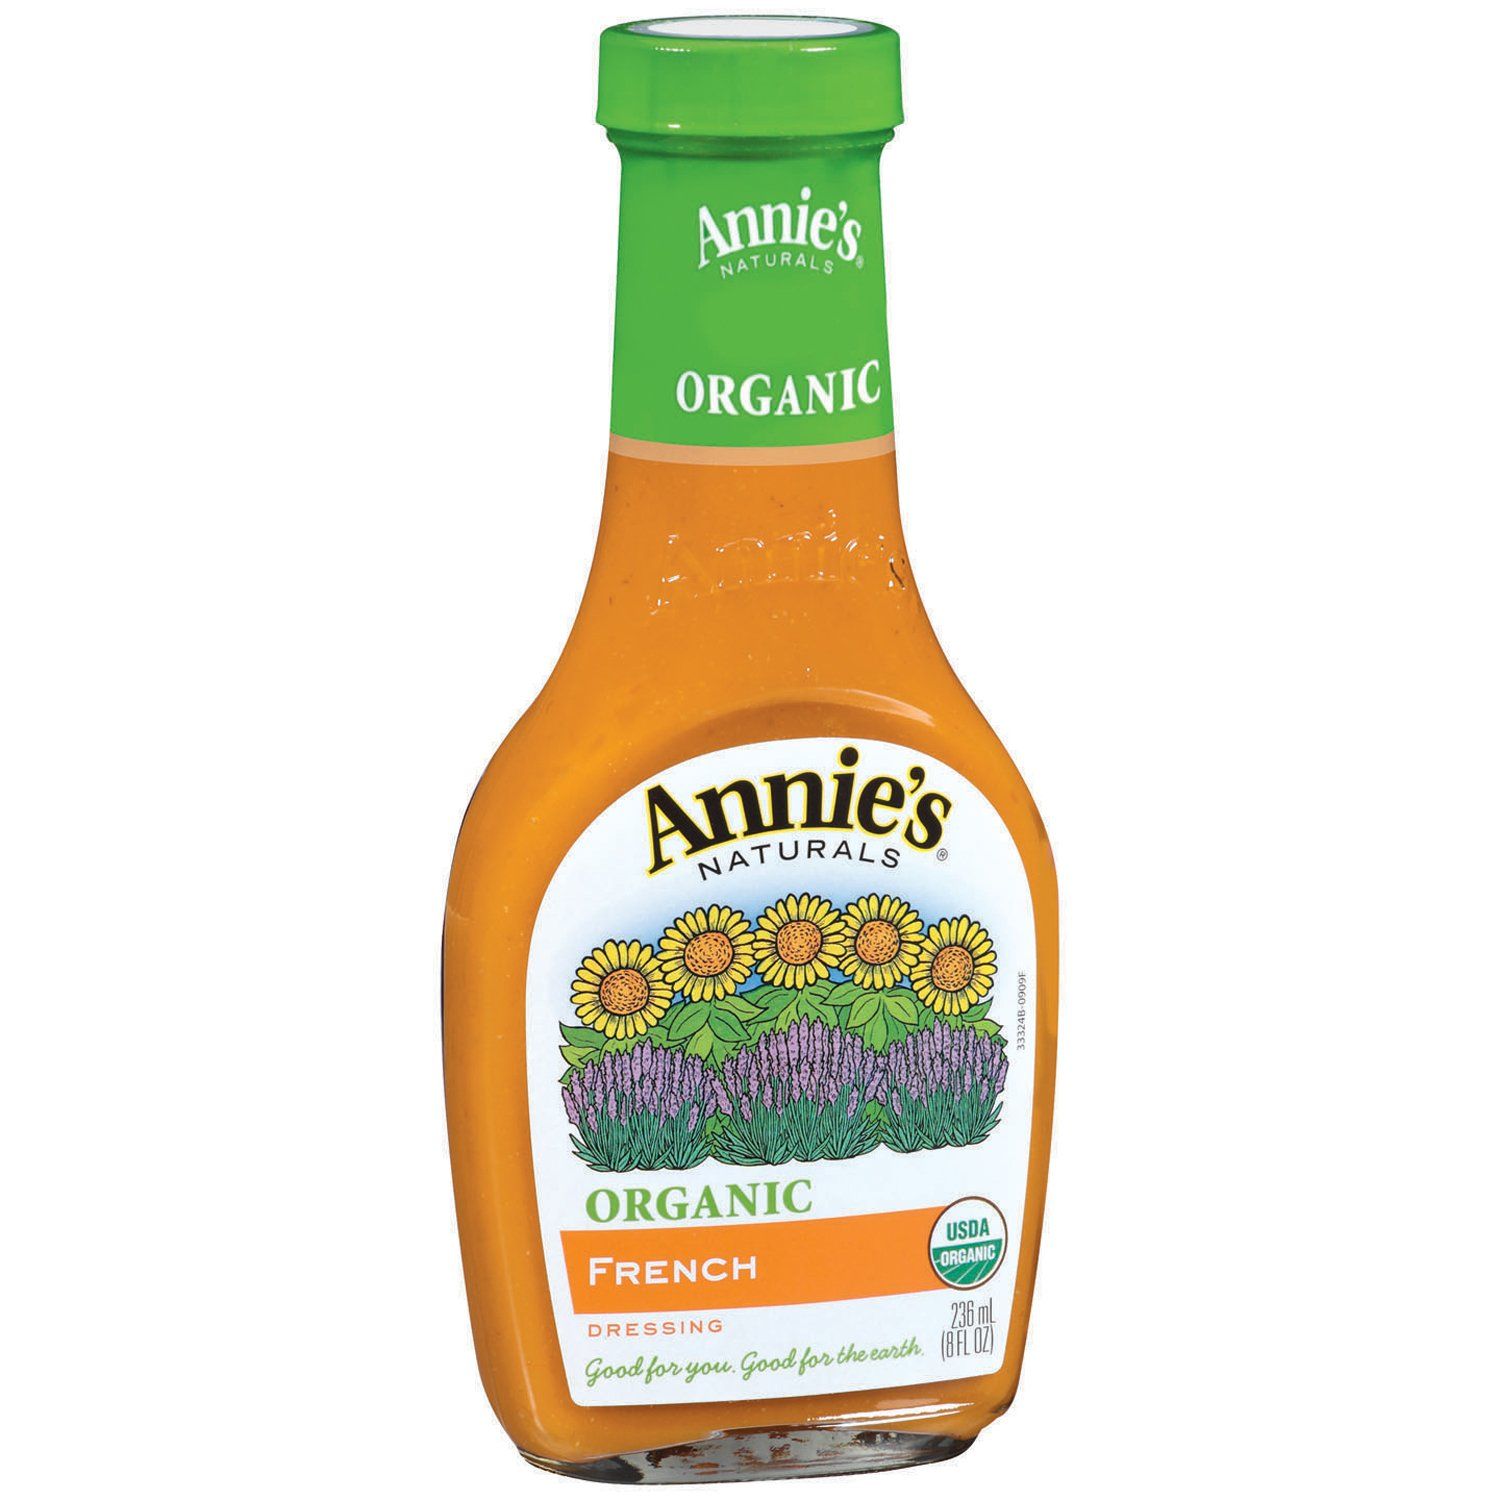 Annie's Organic Gluten Free French Dressing 8 fl oz Bottle